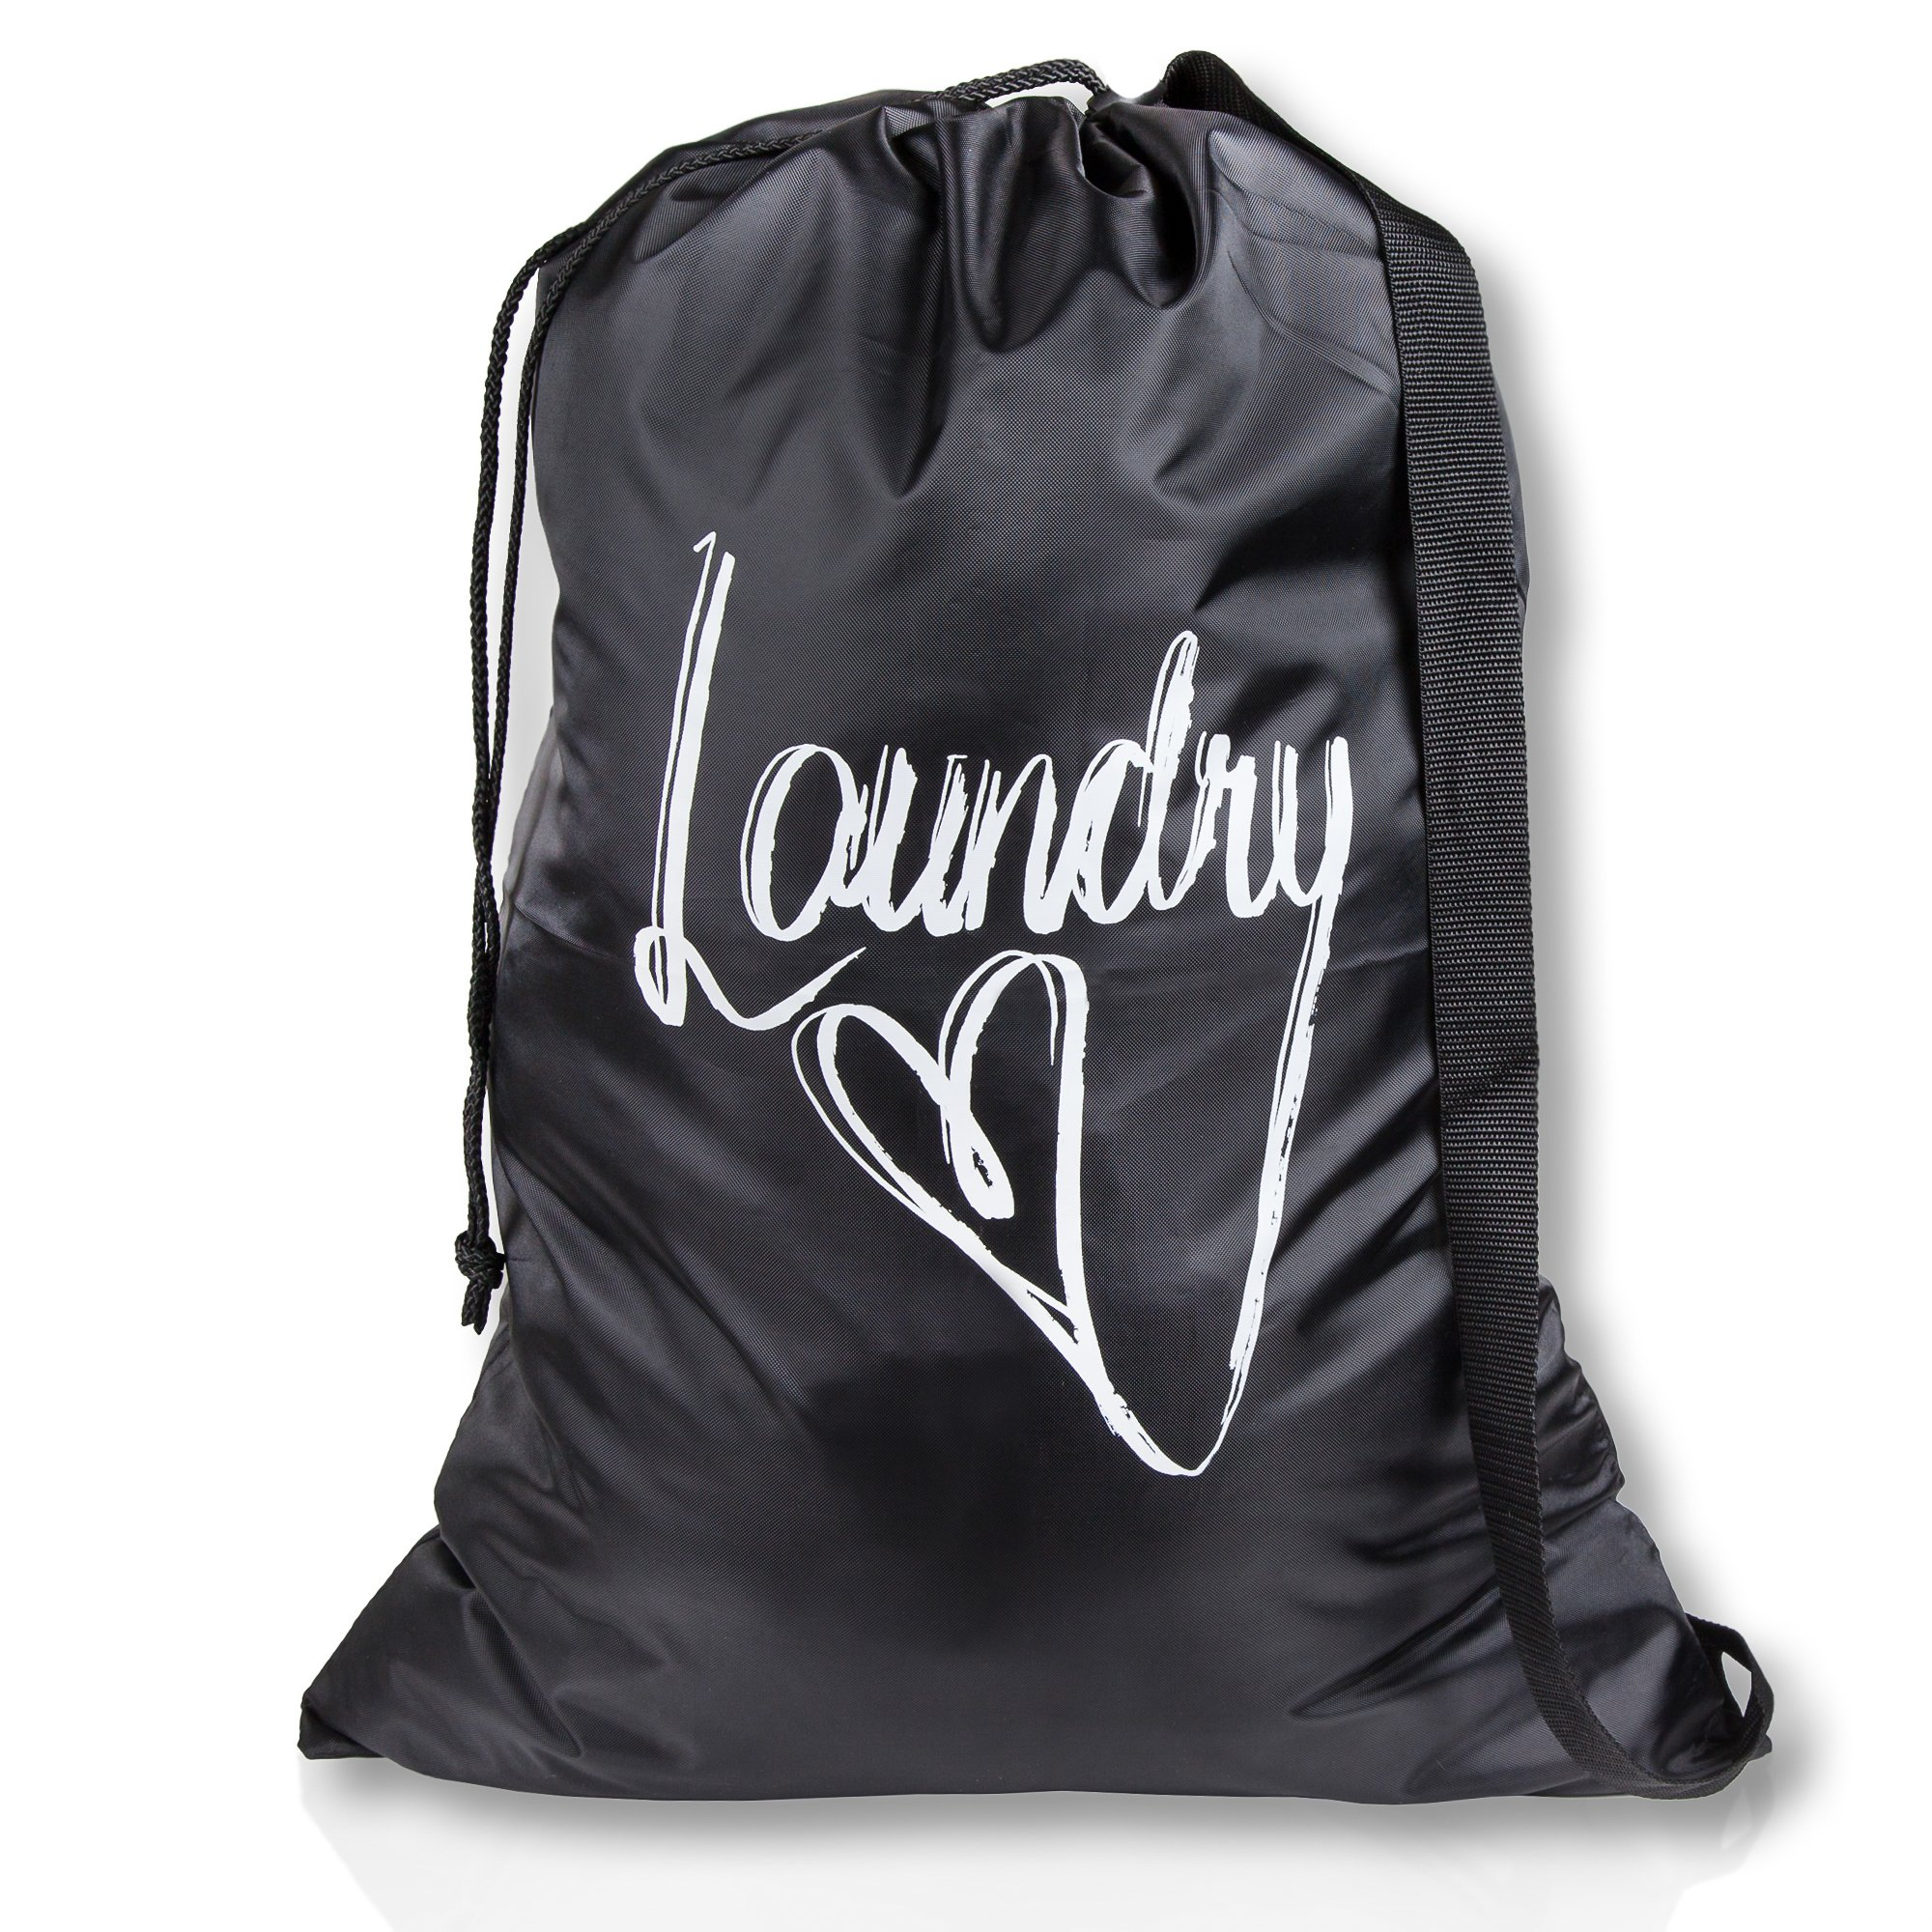 Wajt Najt Best Laundry Bag College Student Gifts Size 20x28 for College Dorm Room and Households Design By Anna Ileby